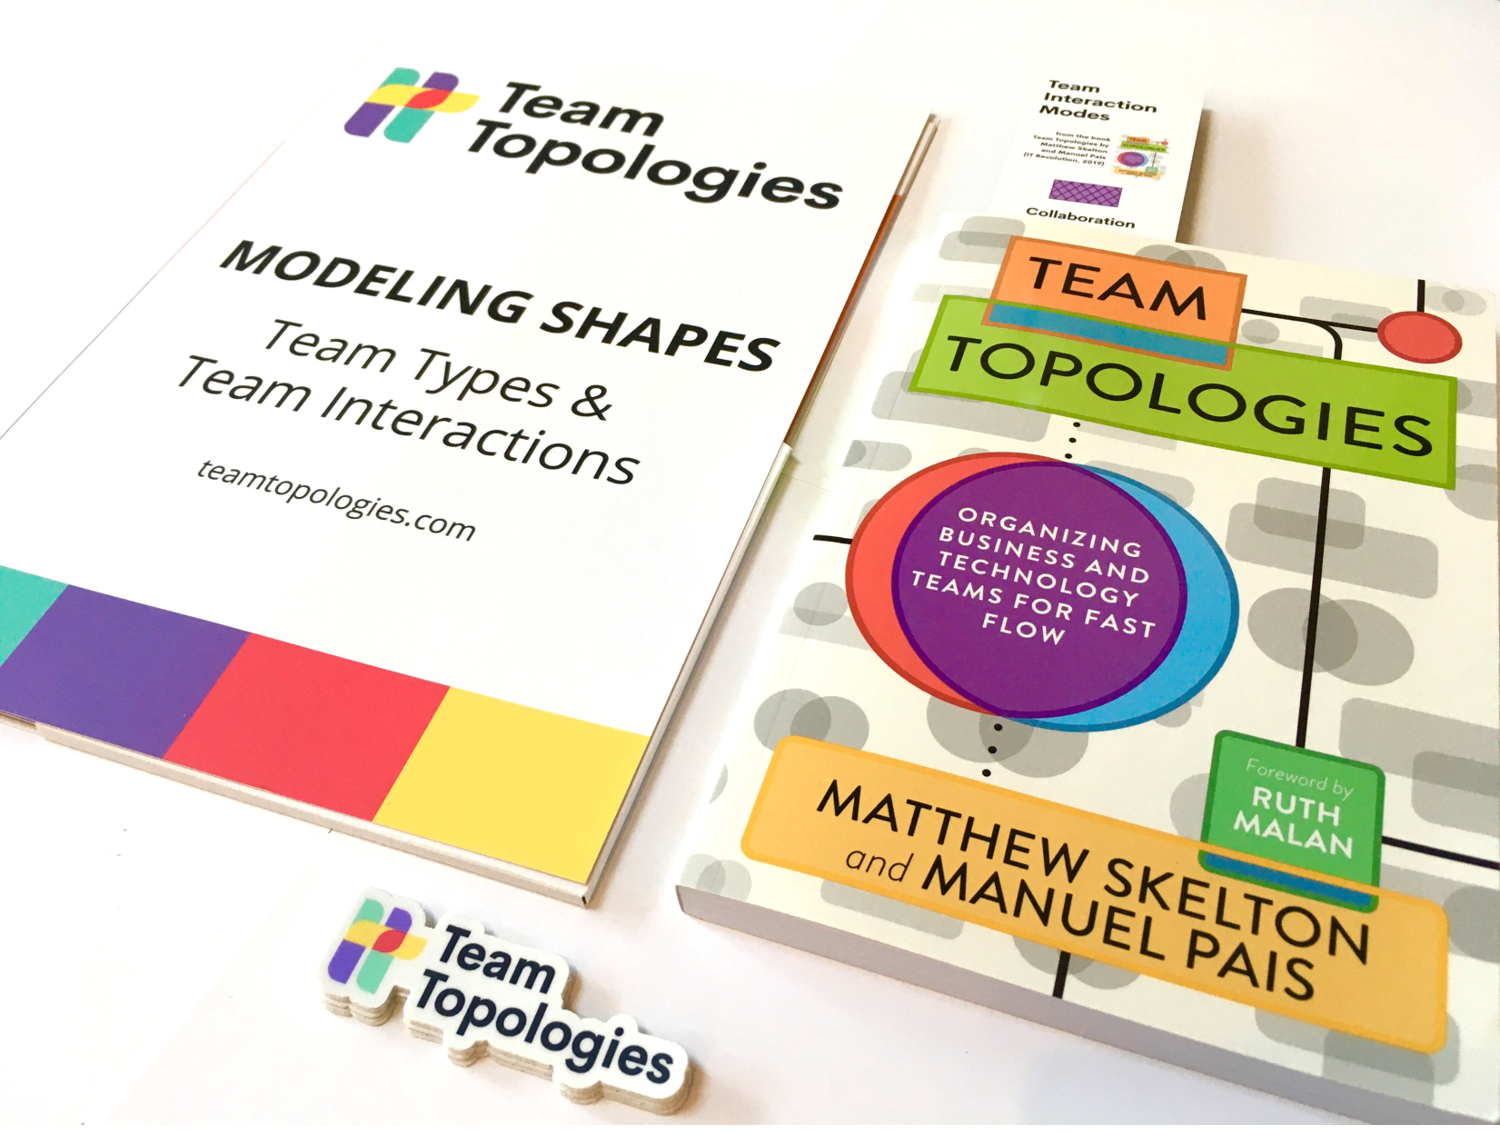 Team Topologies Book by Matthew Skelton & Manuel Pais